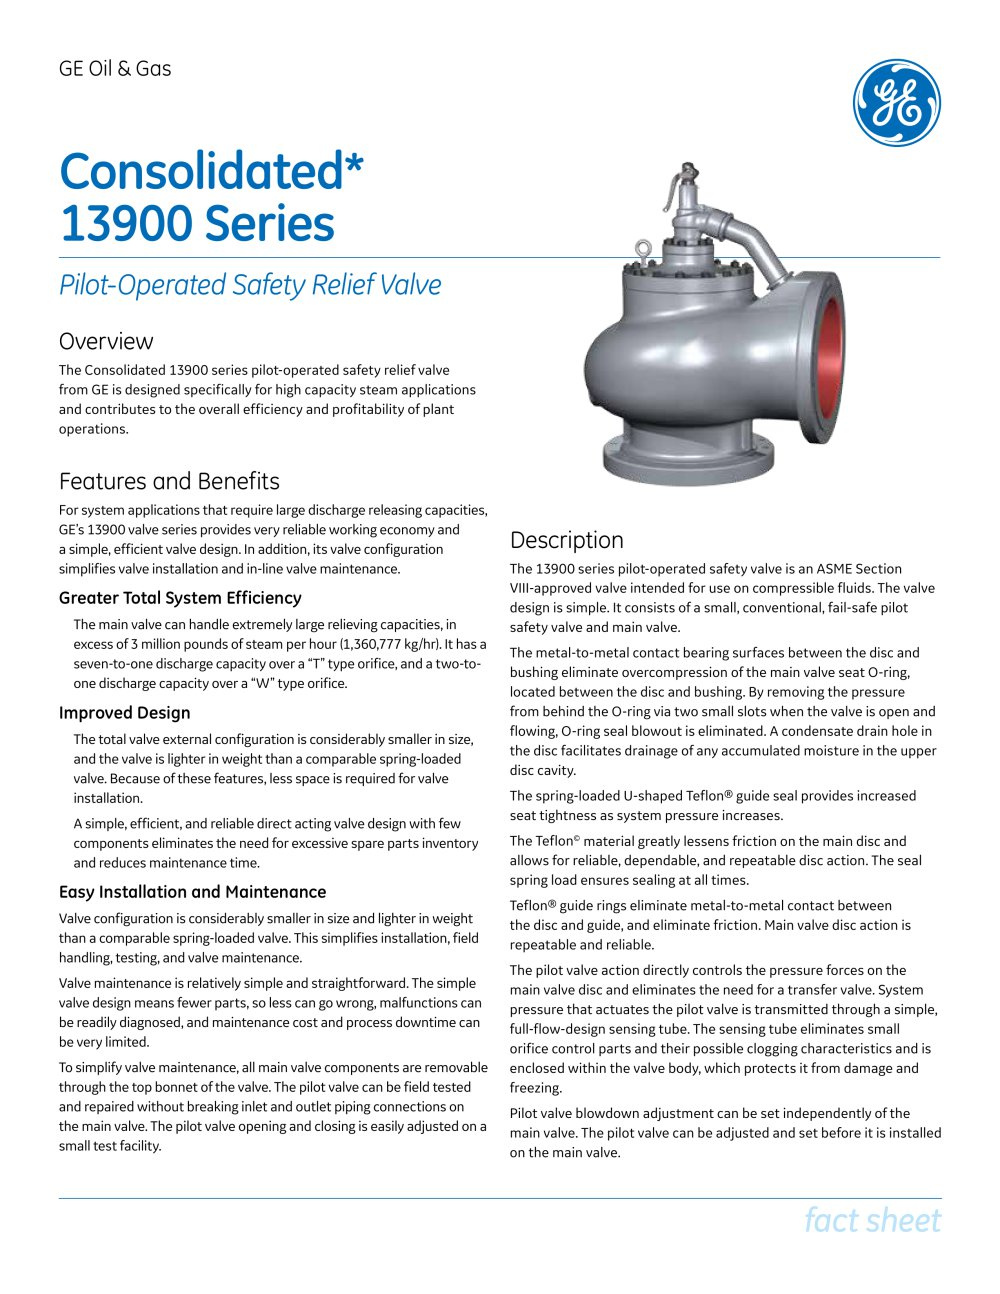 Consolidated Type 13900 Series Pilot Operated Safety Relief Valve 1 2 Pages